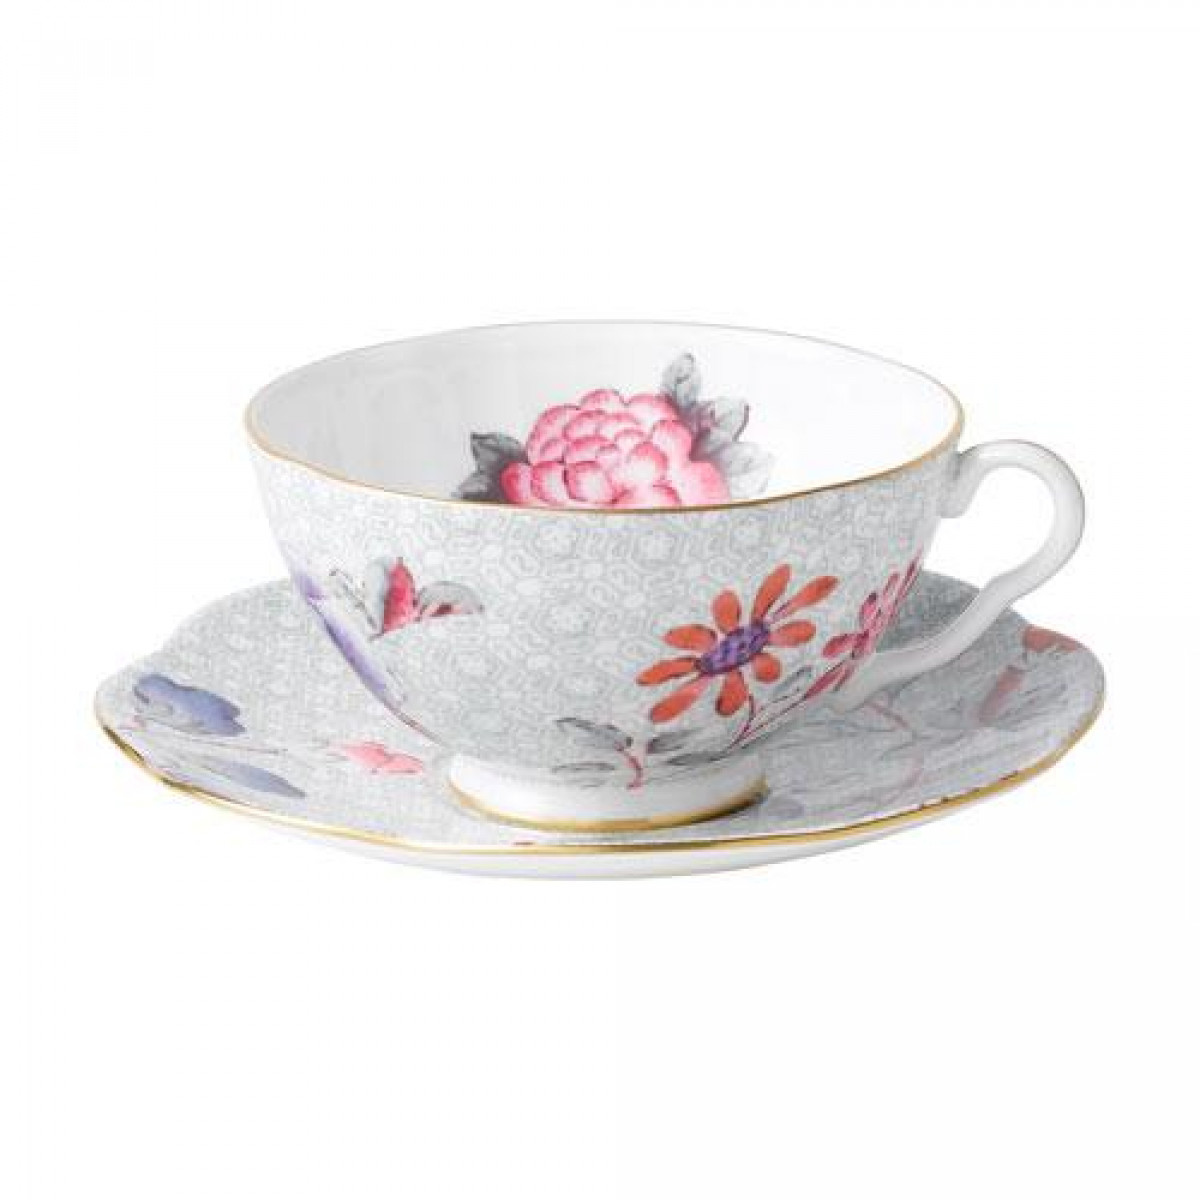 Elegante Teetasse aus dem Teeservice Harlequin Collection Cuckoo von Wedgwood